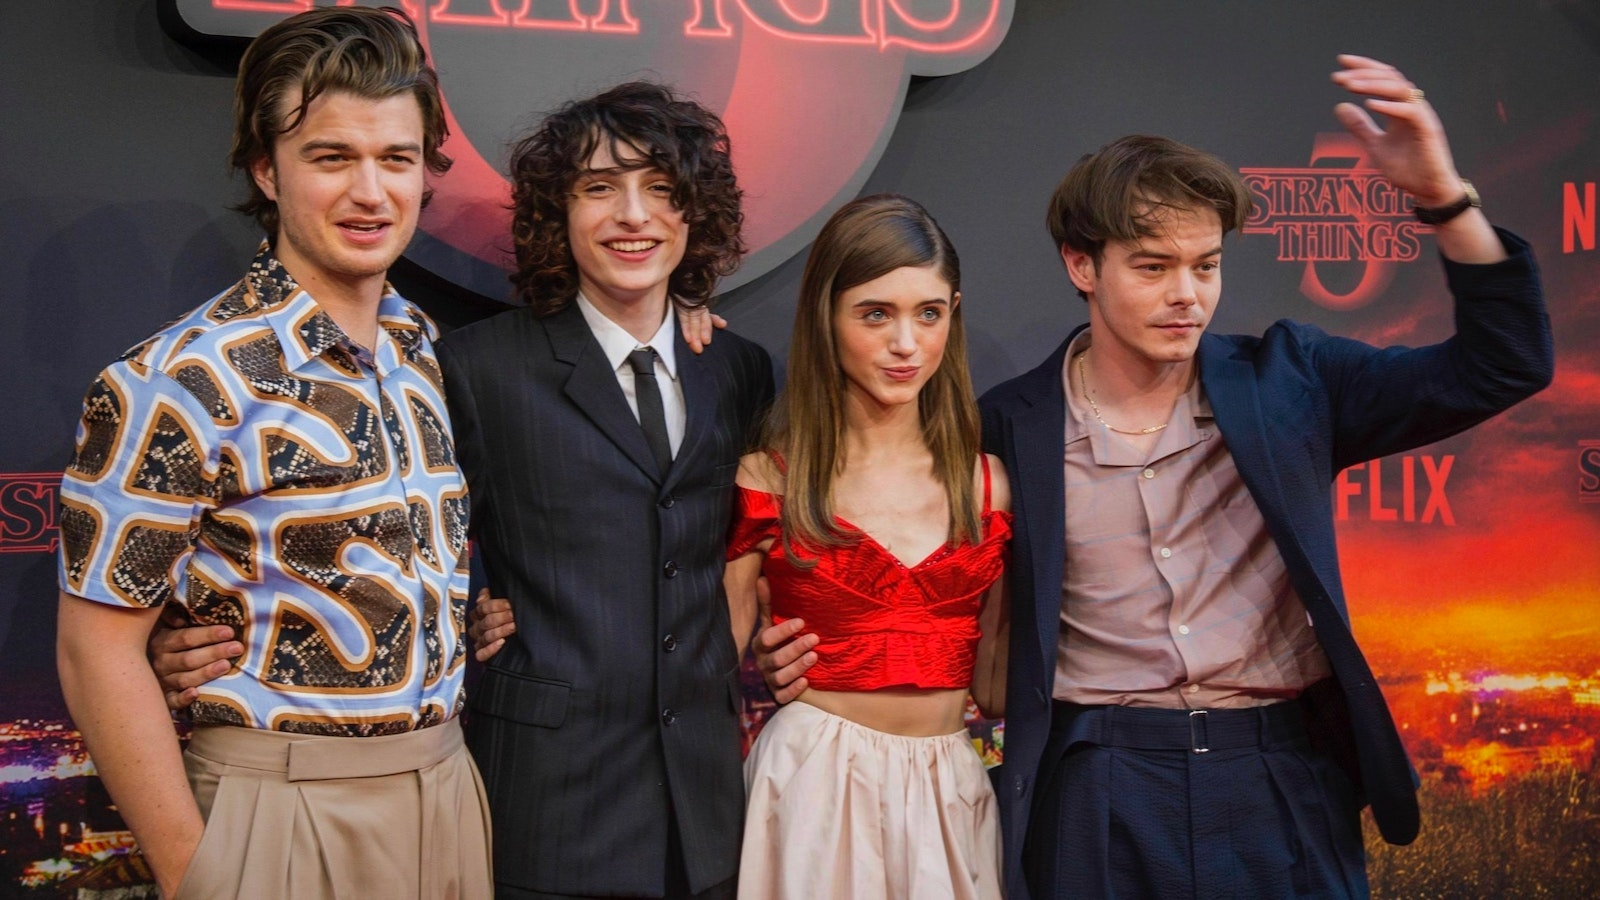 Cast members of Netflix 's Stranger Things at a screening in France last month. Photo by AP.